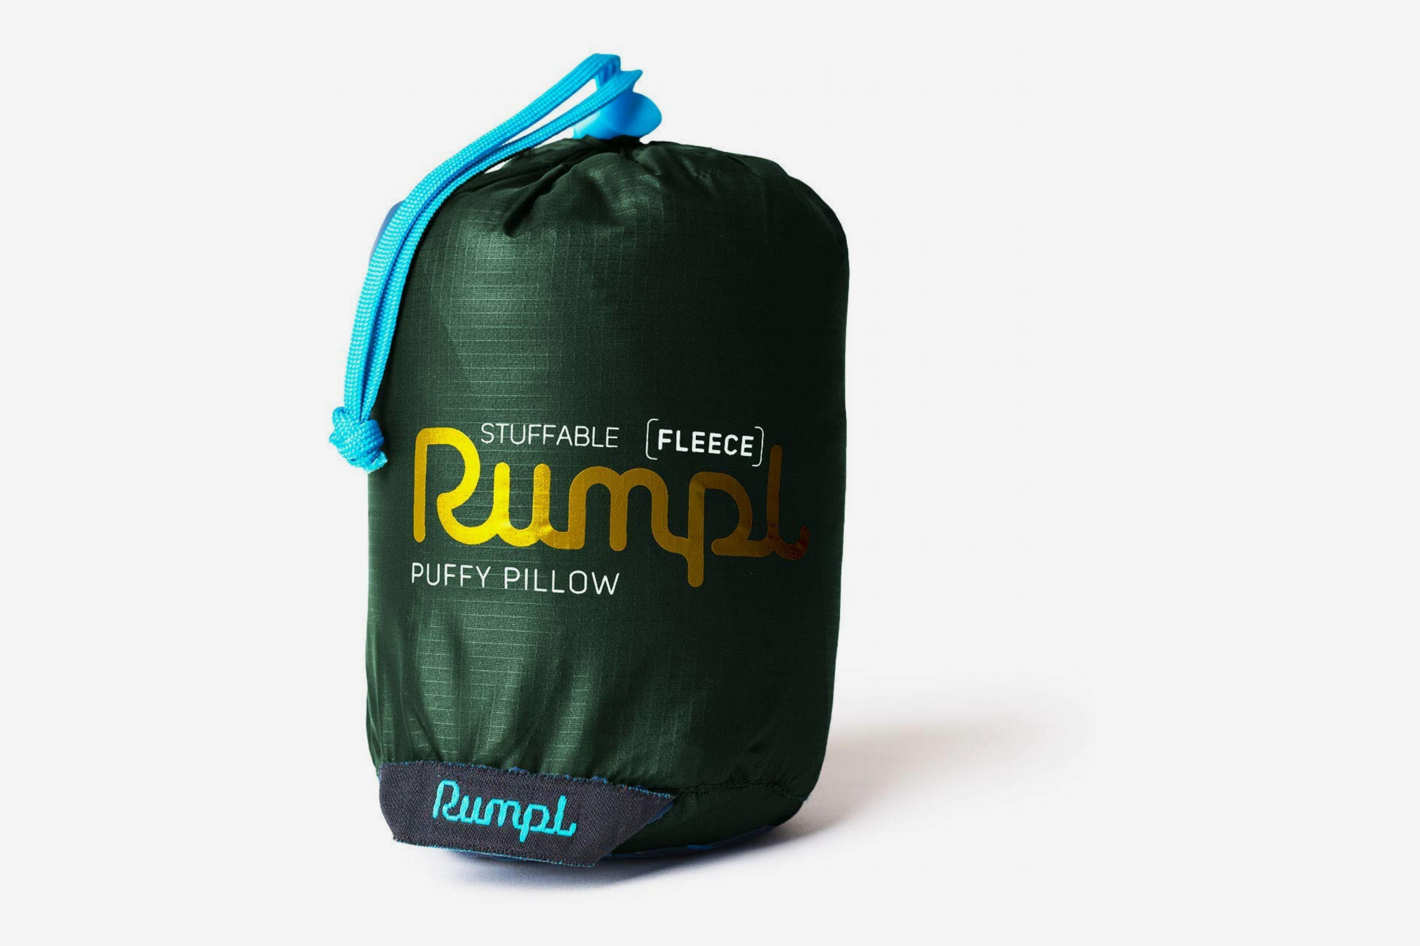 Rumpl Stuffable Fleece Pillowcase